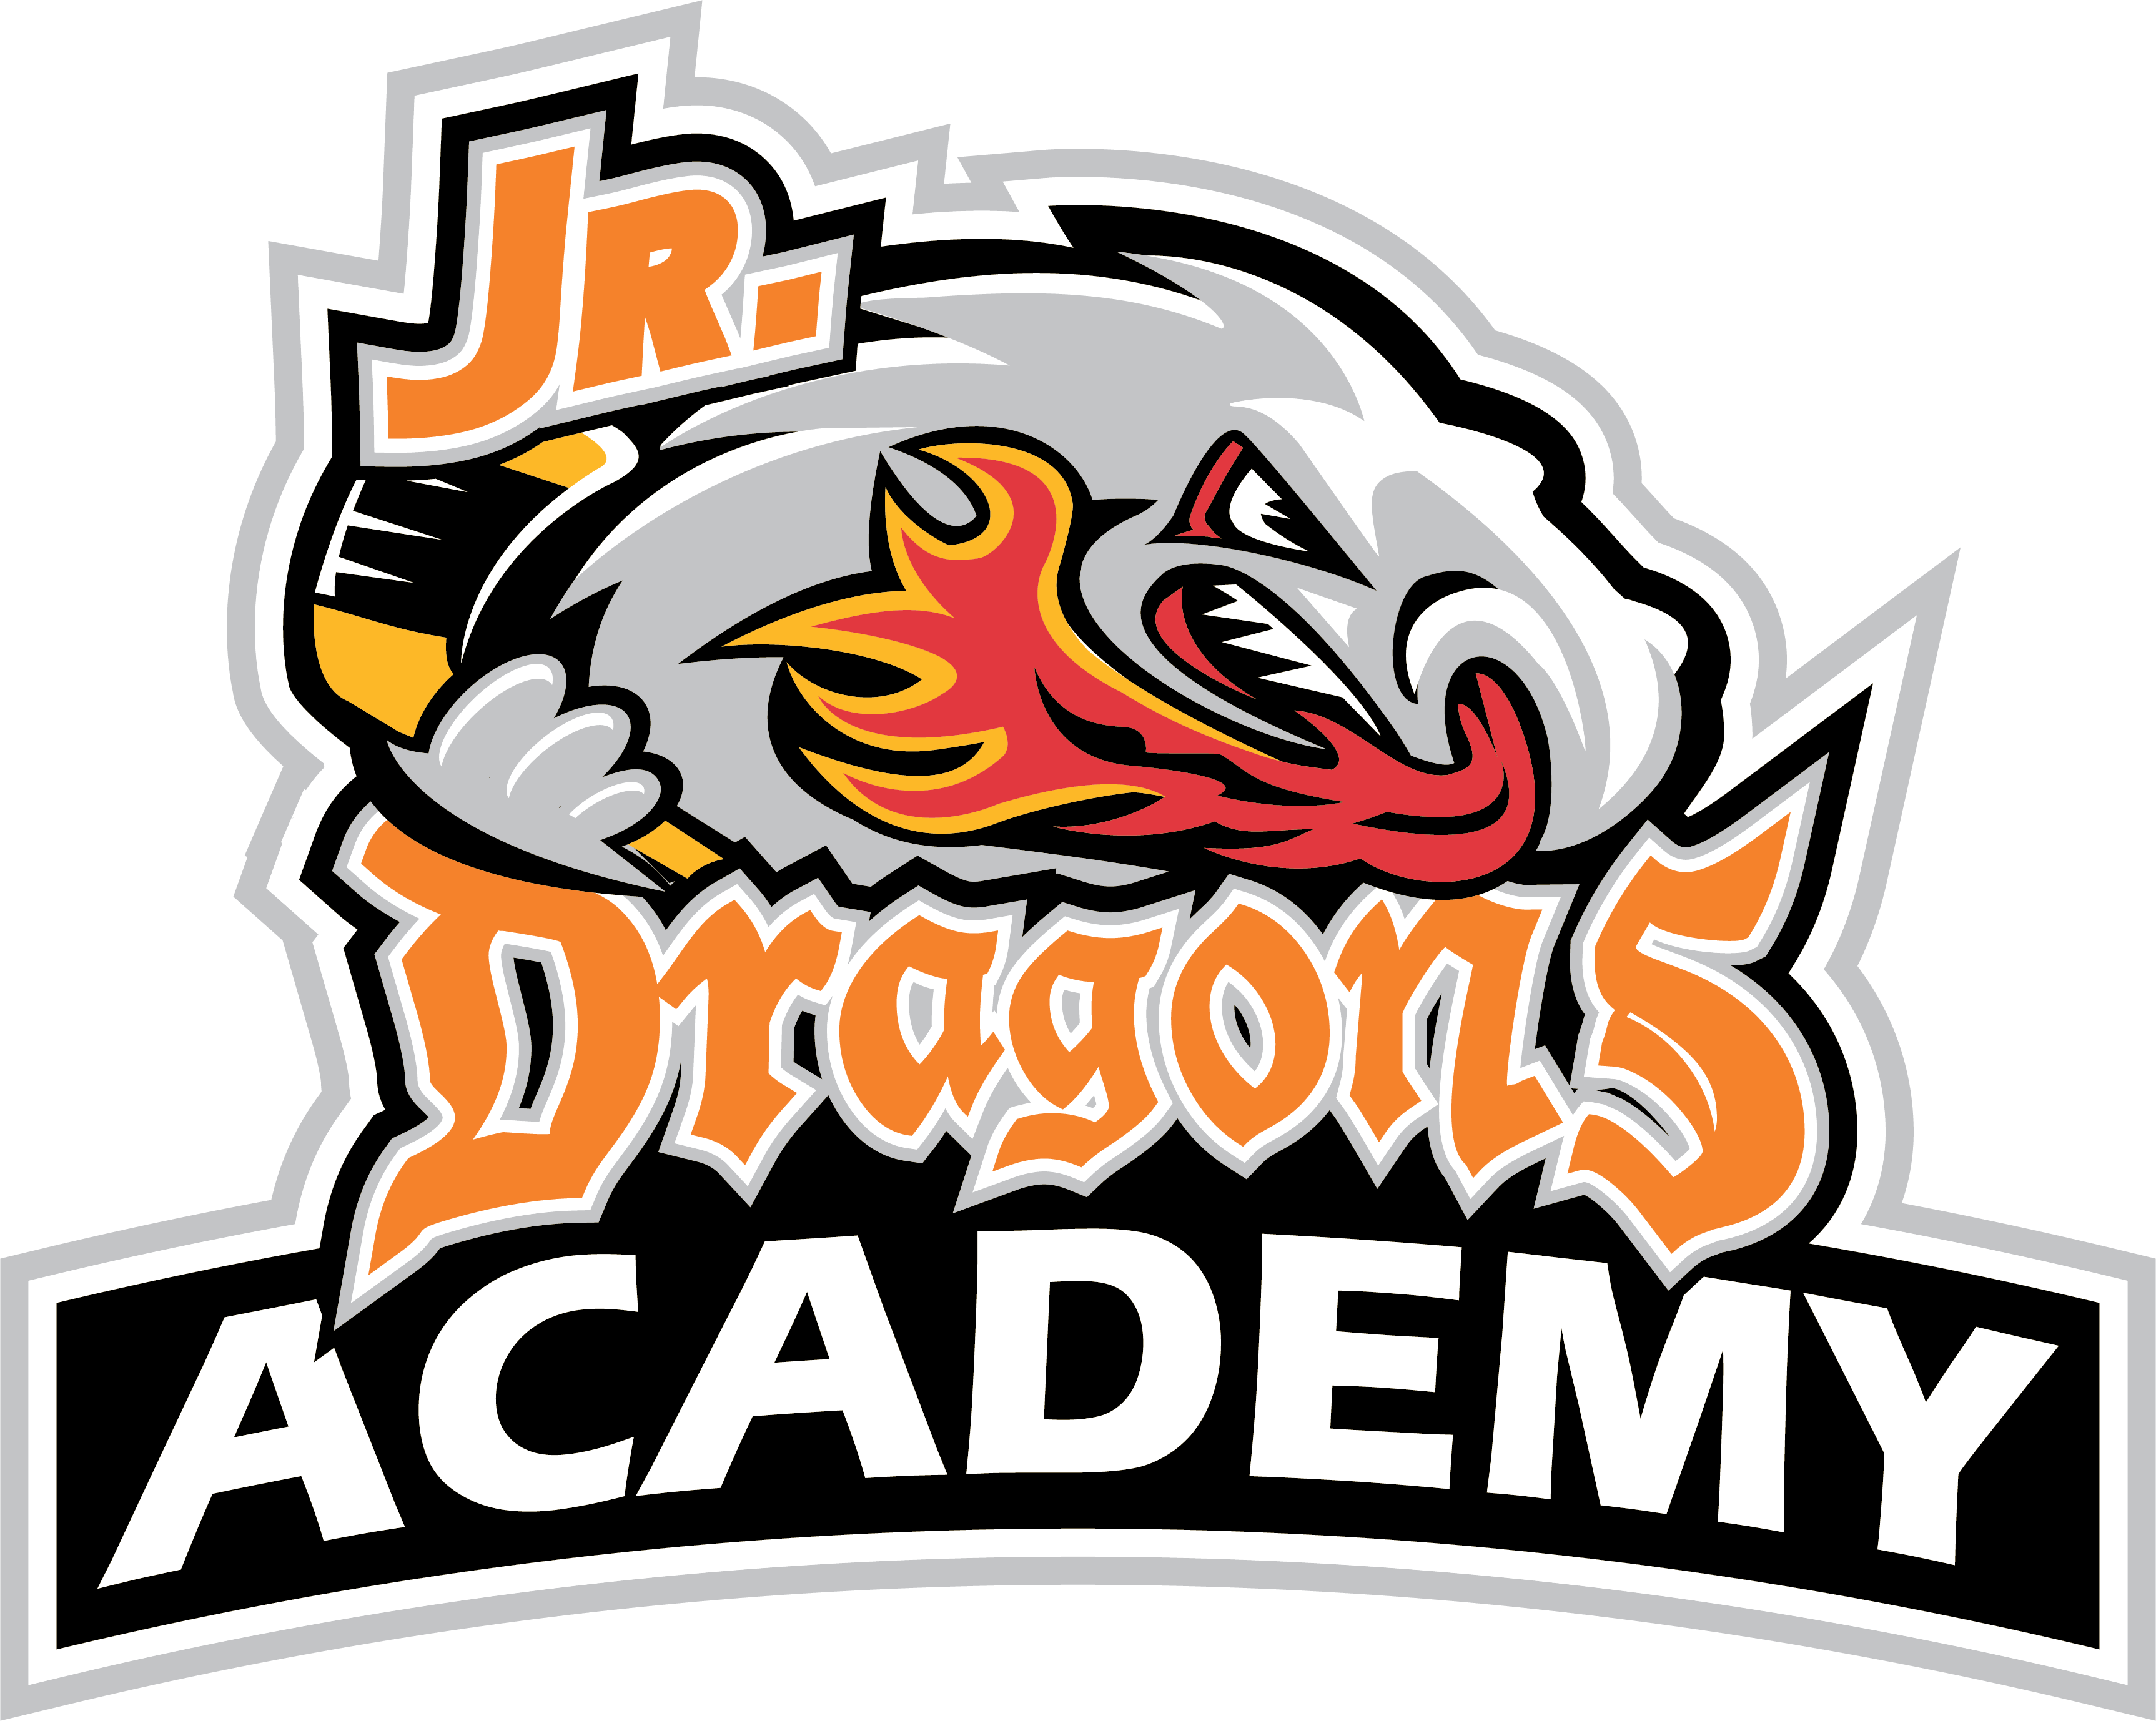 Drumheller Dragons & St.Anthony's Breakfast Academy